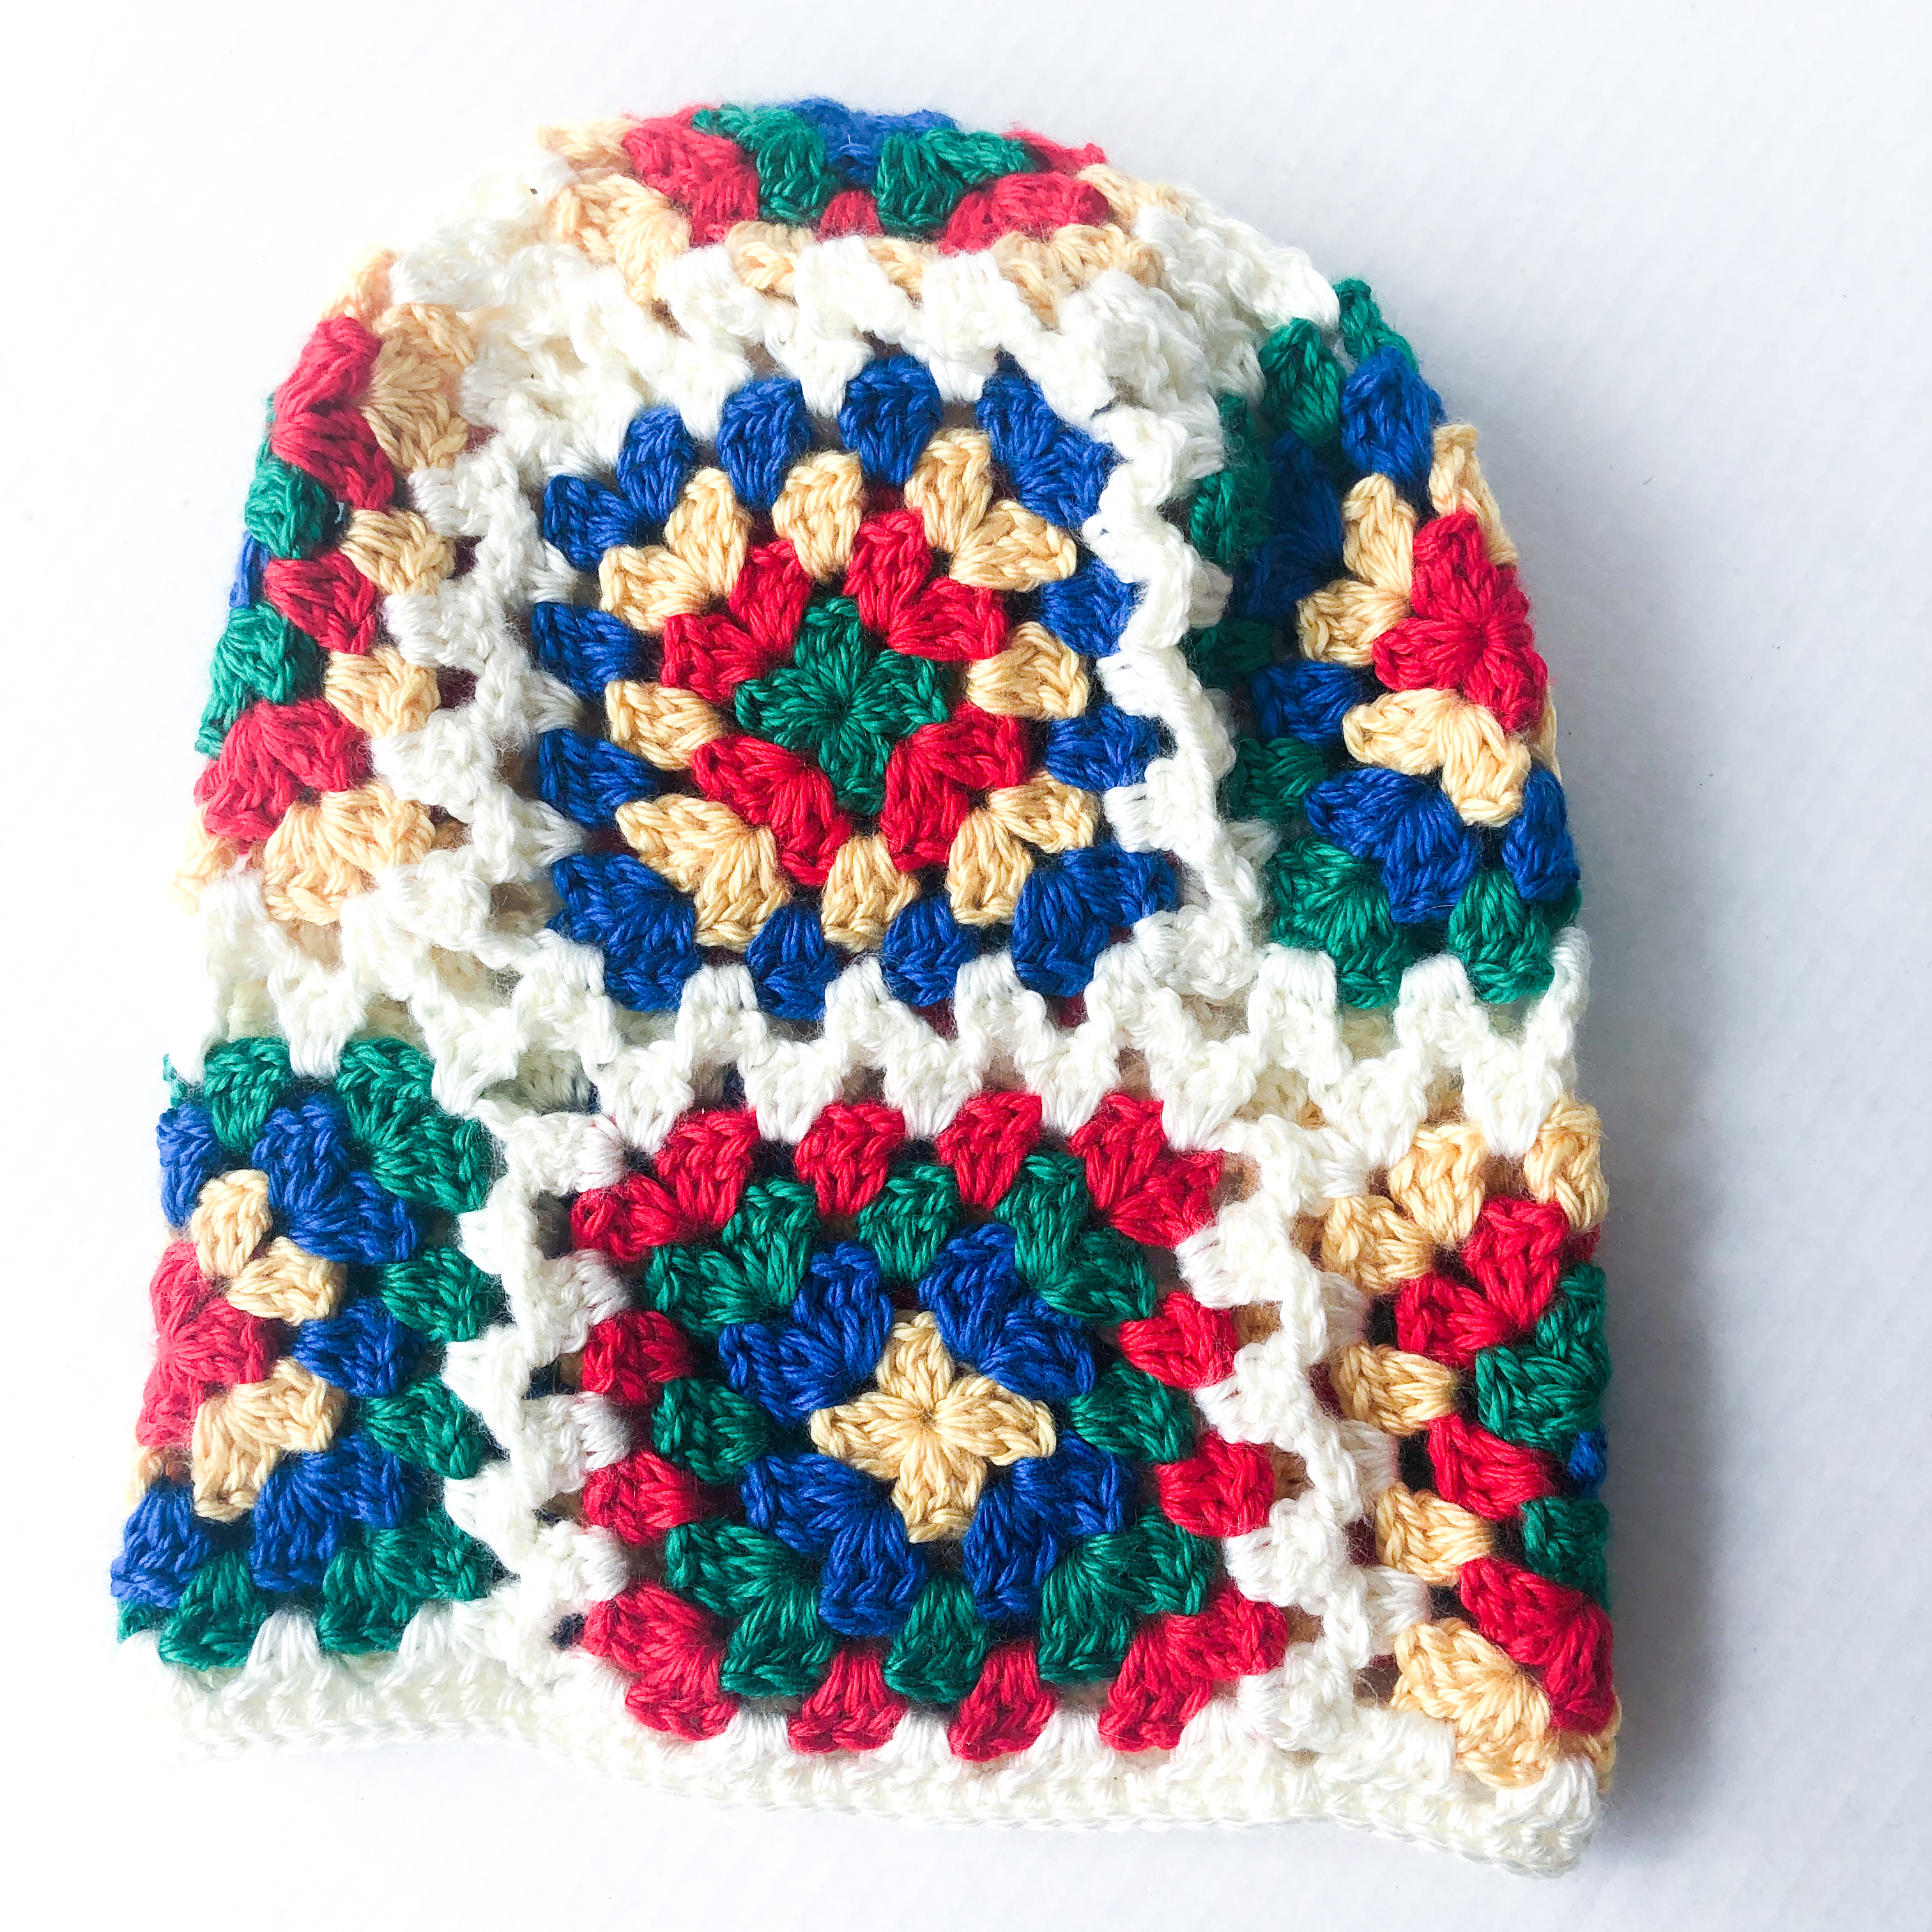 Primary Granny Square Slouchy Cap :: Hand-Crocheted Hat (Adult Sized)